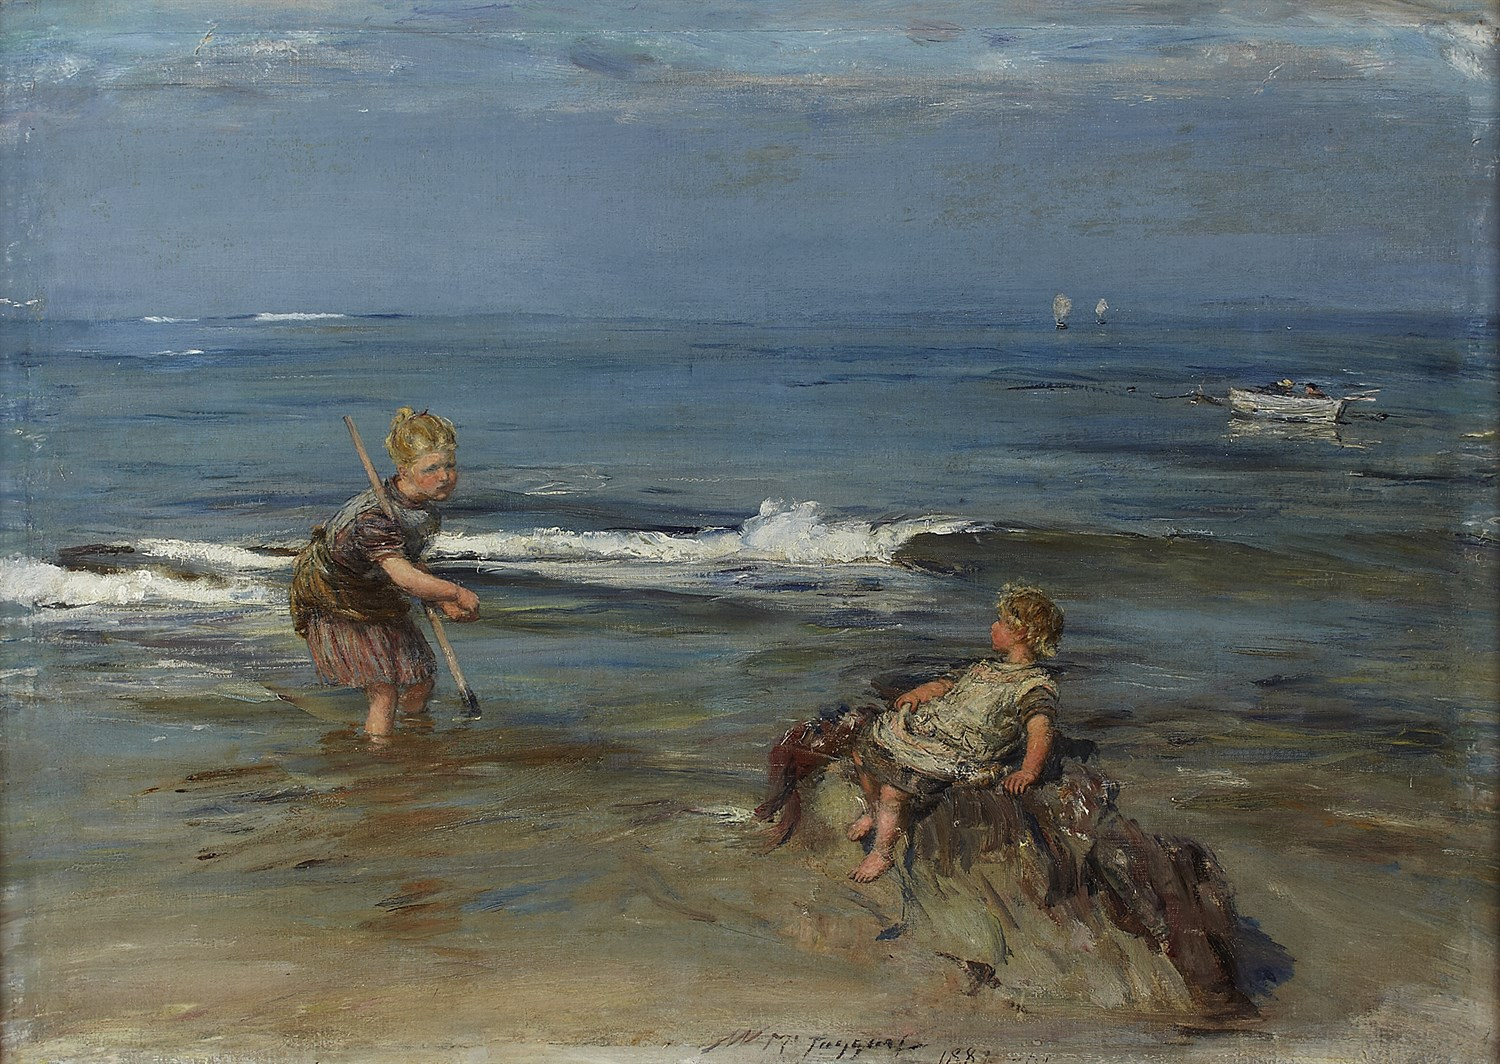 Lot 52 - WILLIAM MCTAGGART R.S.A., R.S.W (SCOTTISH 1835-1910)